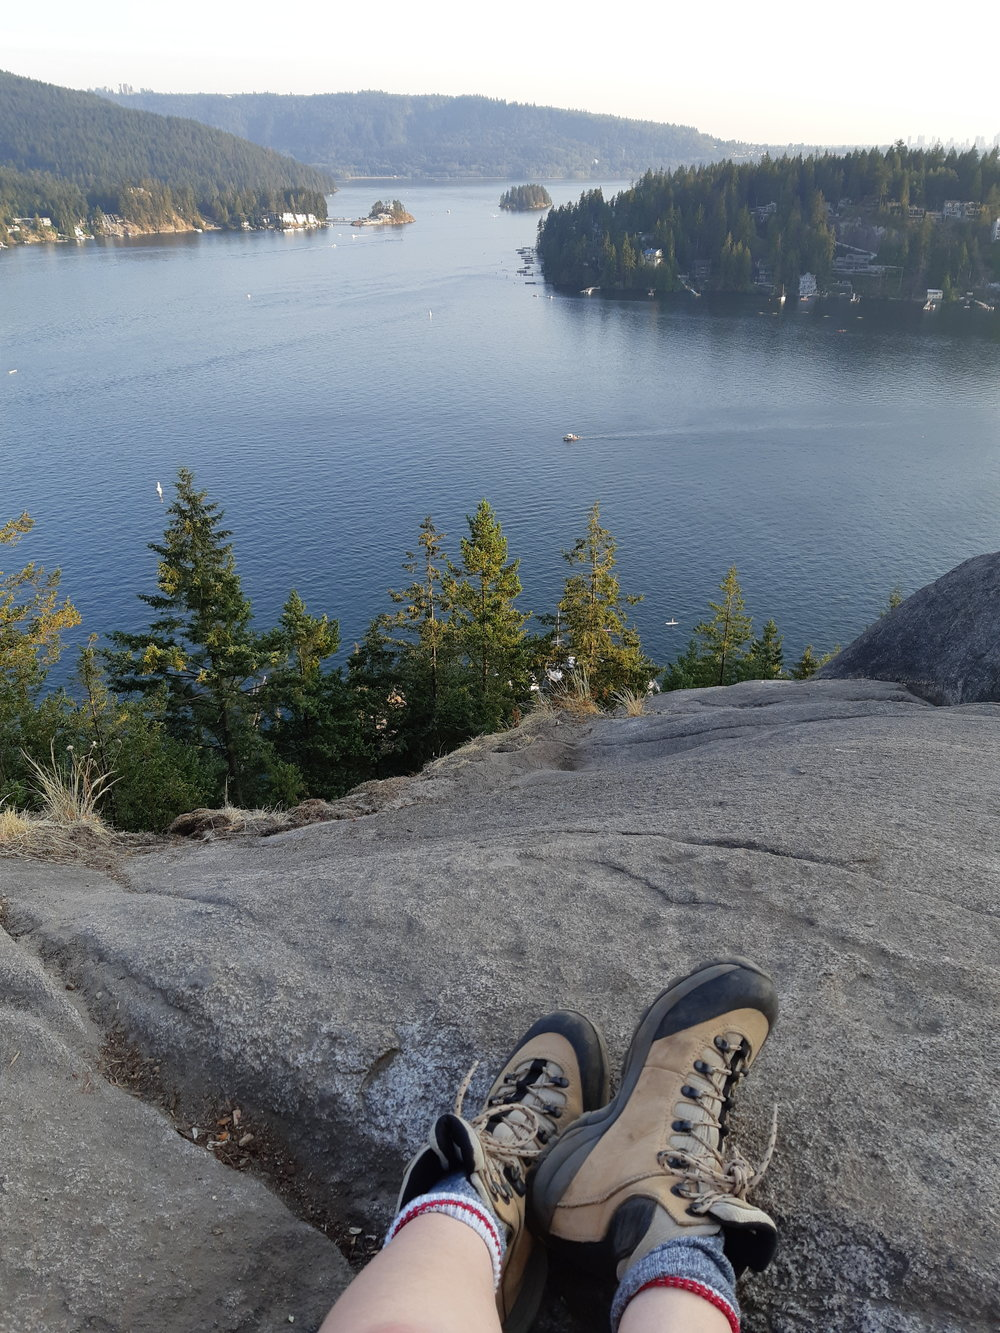 A hike that many local Vancouverites would recognize, Quarry Rock, is now possible for me to enjoy again!